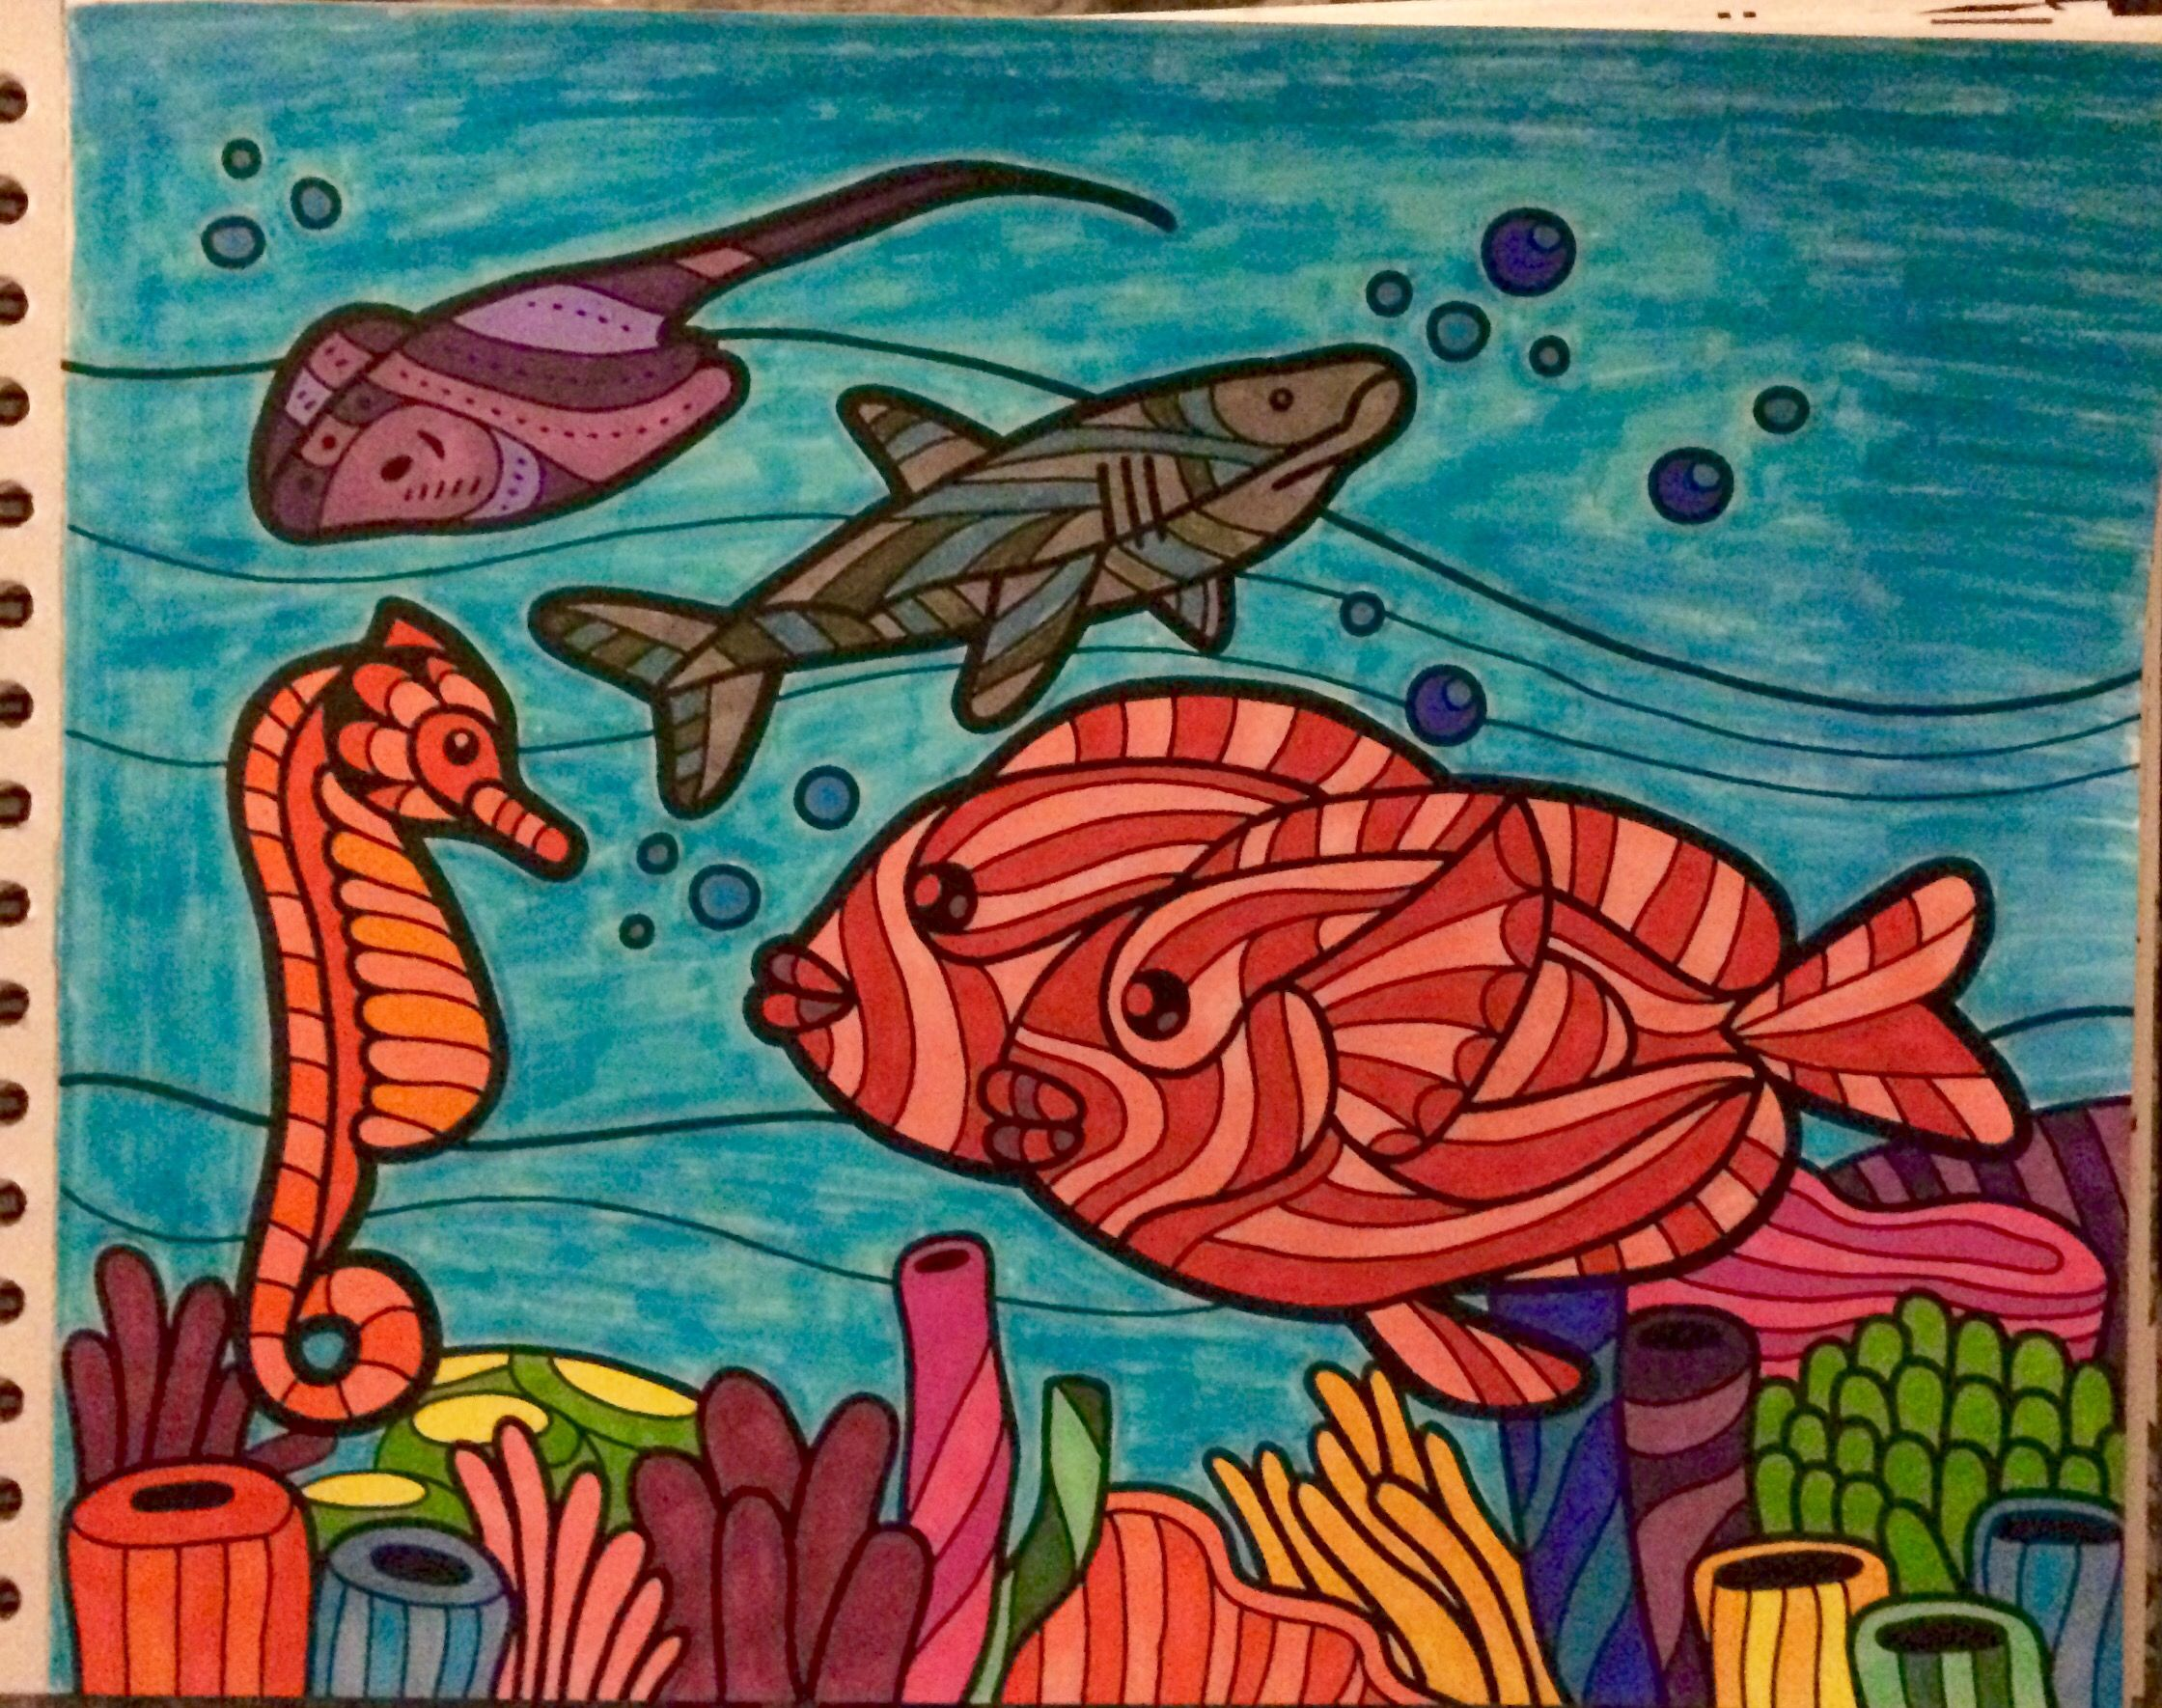 Pin by Cathie Lucas on ColorIt | Pinterest | Wild animals